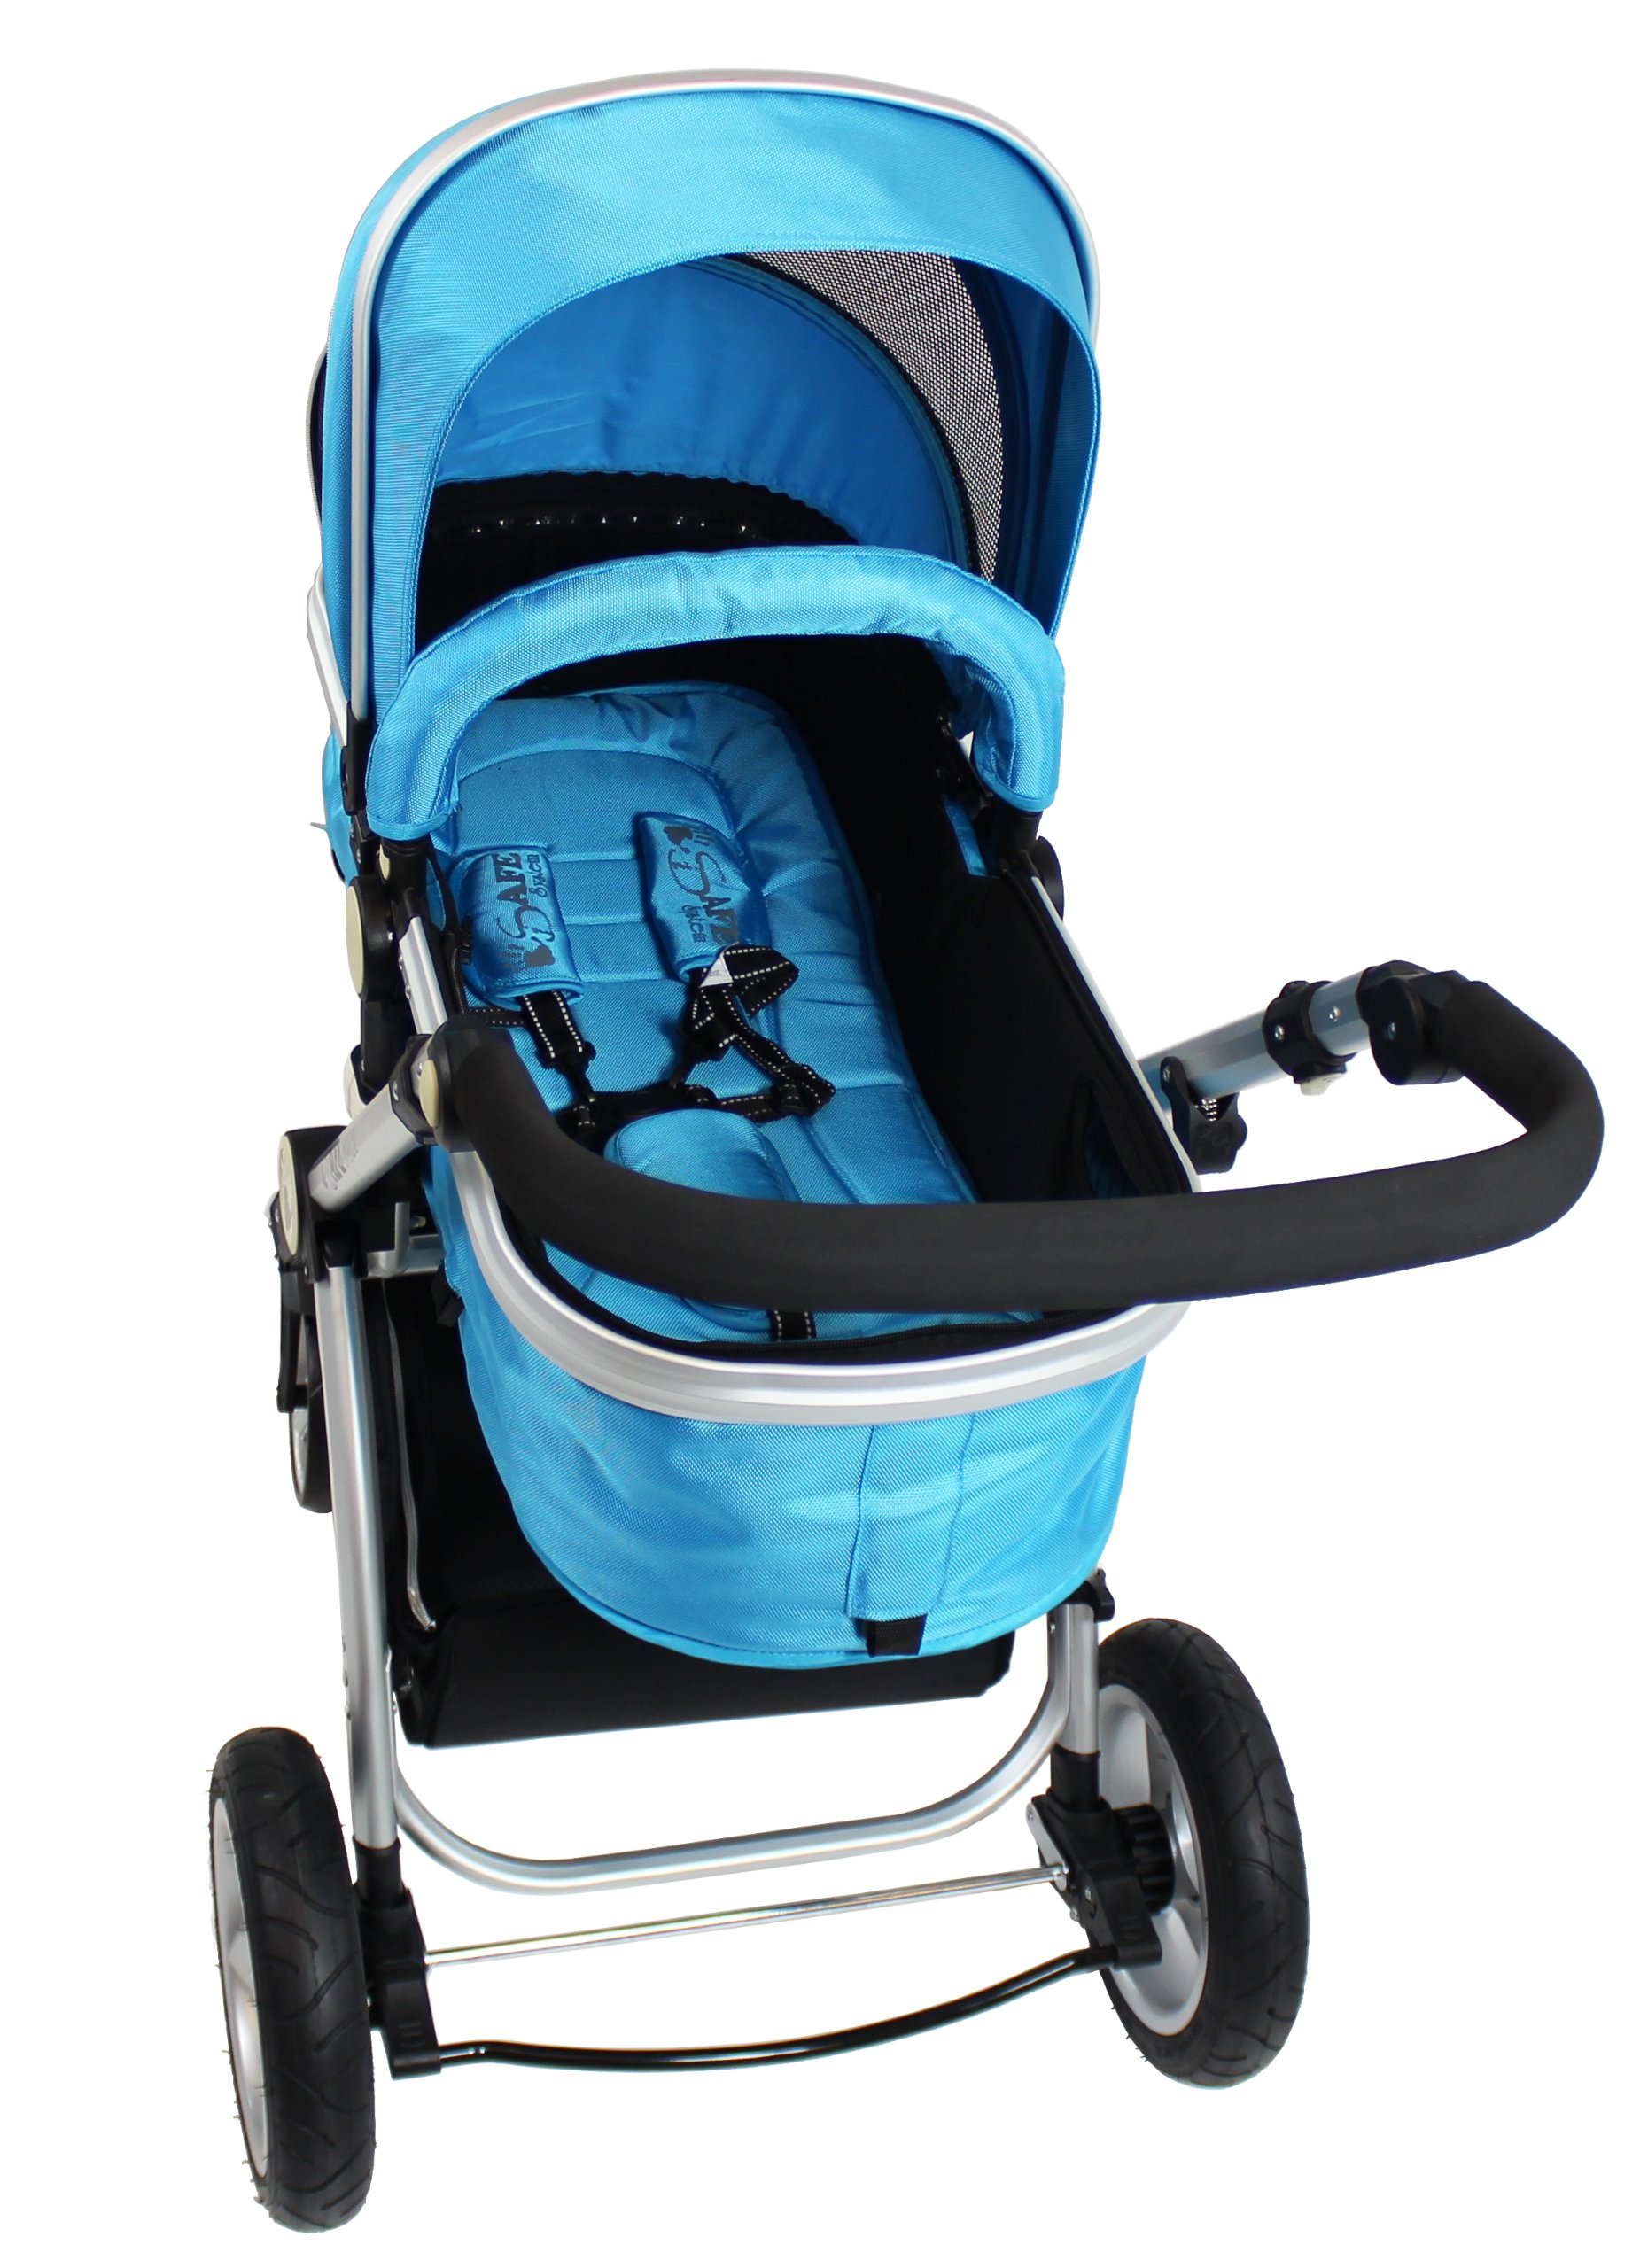 i-Safe System - Ocean Trio Travel System Pram & Luxury Stroller 3 in 1 Complete With Car Seat iSafe  3